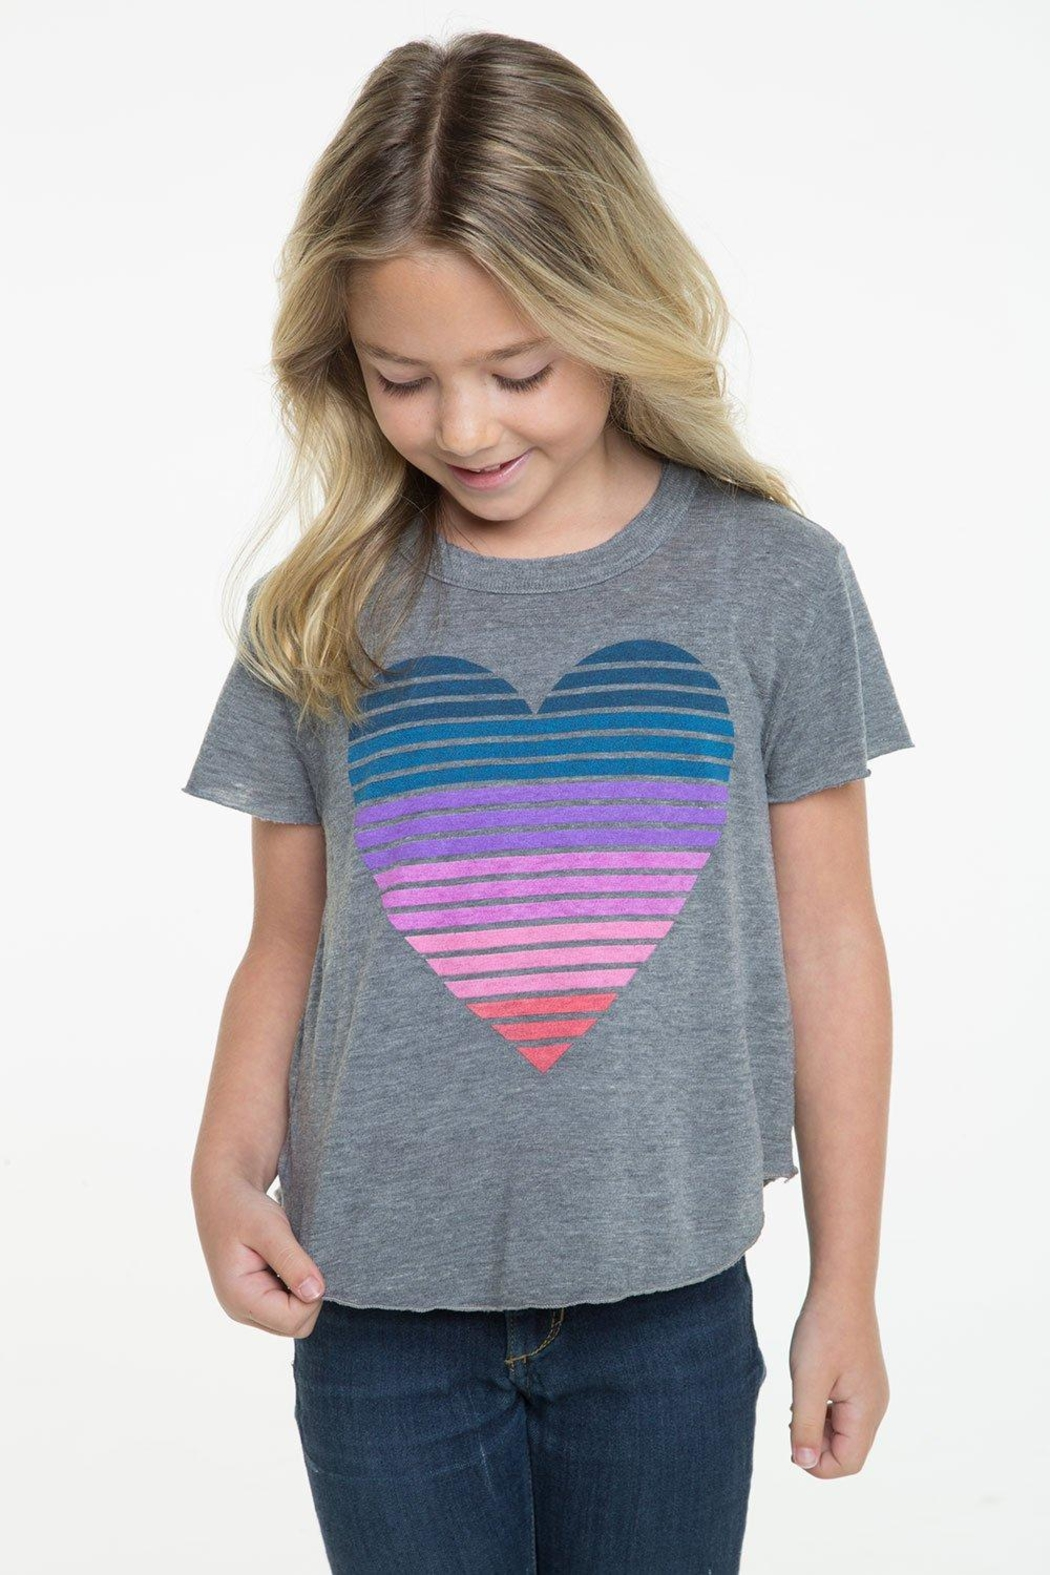 57a95e65b Chaser Striped Heart Tee from New York by infinity/jjlaz — Shoptiques